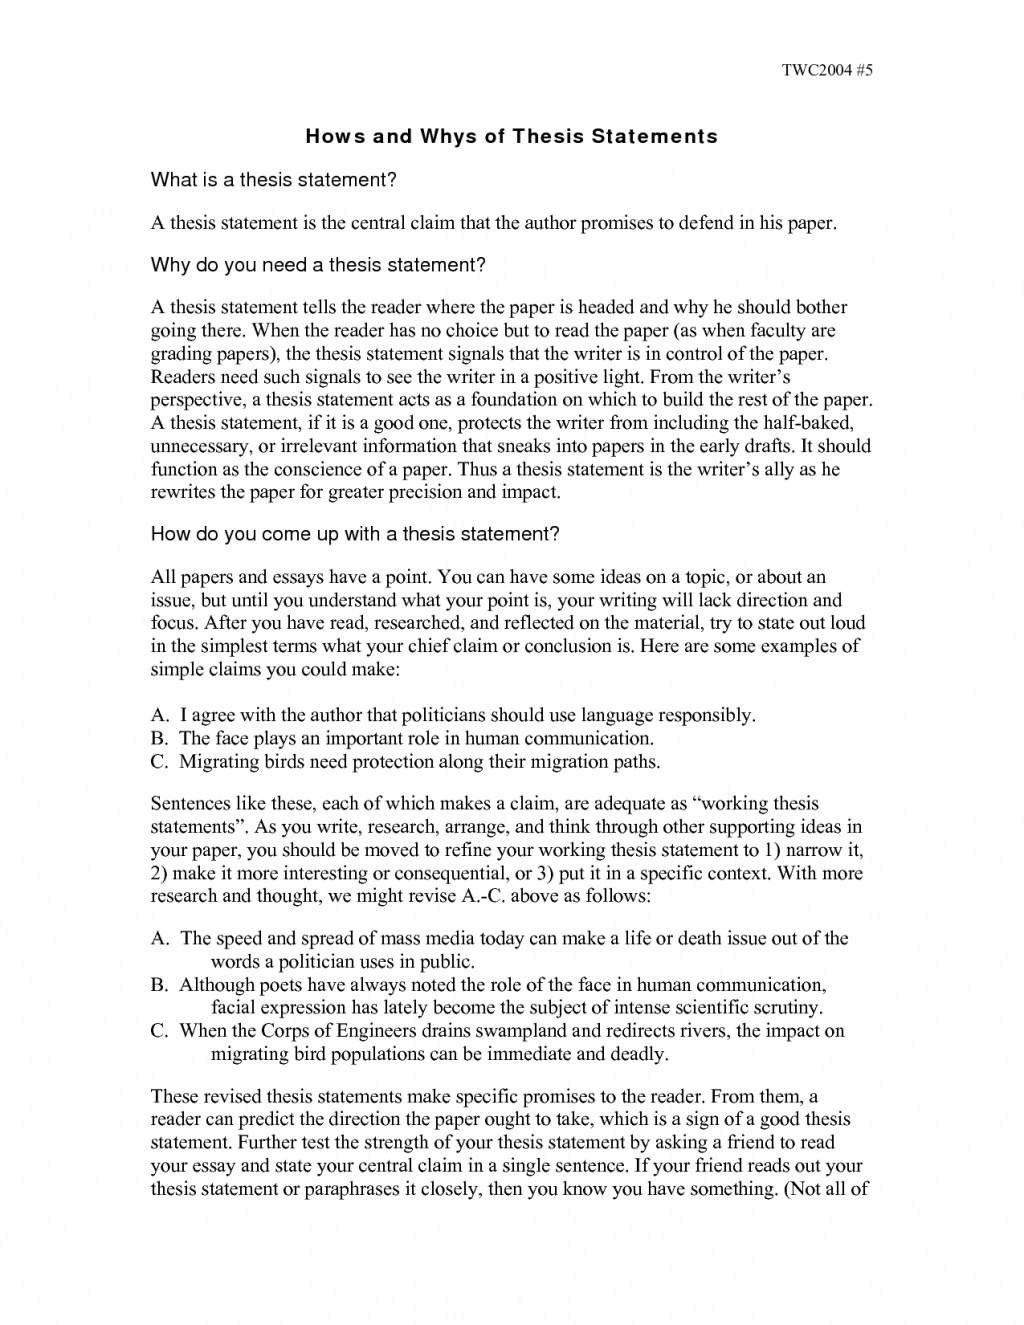 009 Apa Style For Psychology Researchs Astounding Research Papers Format Paper Example Large